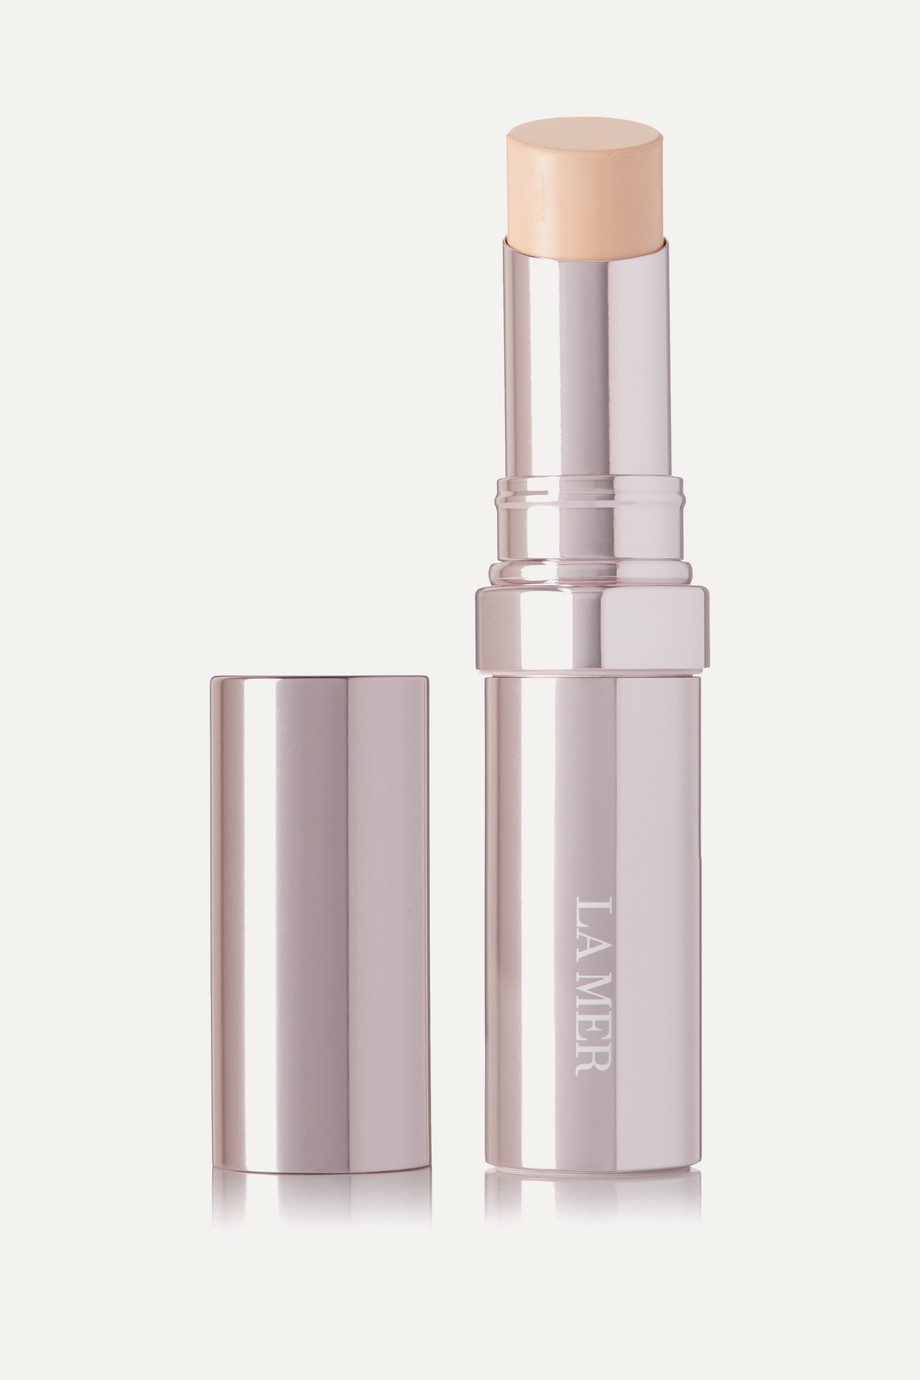 La Mer The Concealer - Very Light